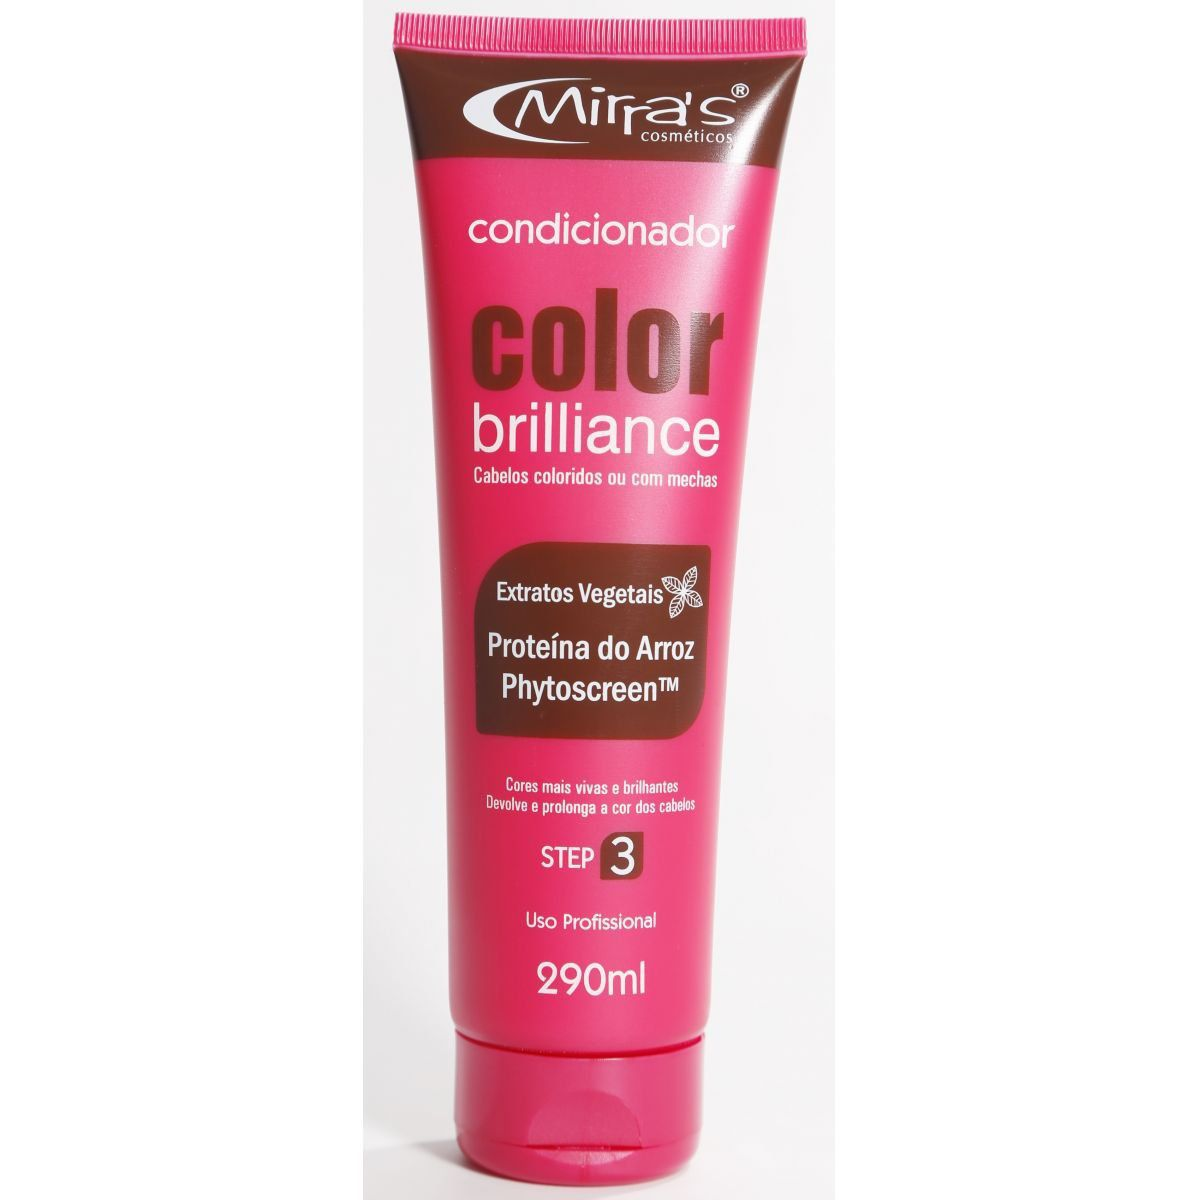 Condicionador Color Brilliance Proteína do Arroz 290ml - Mirra´s